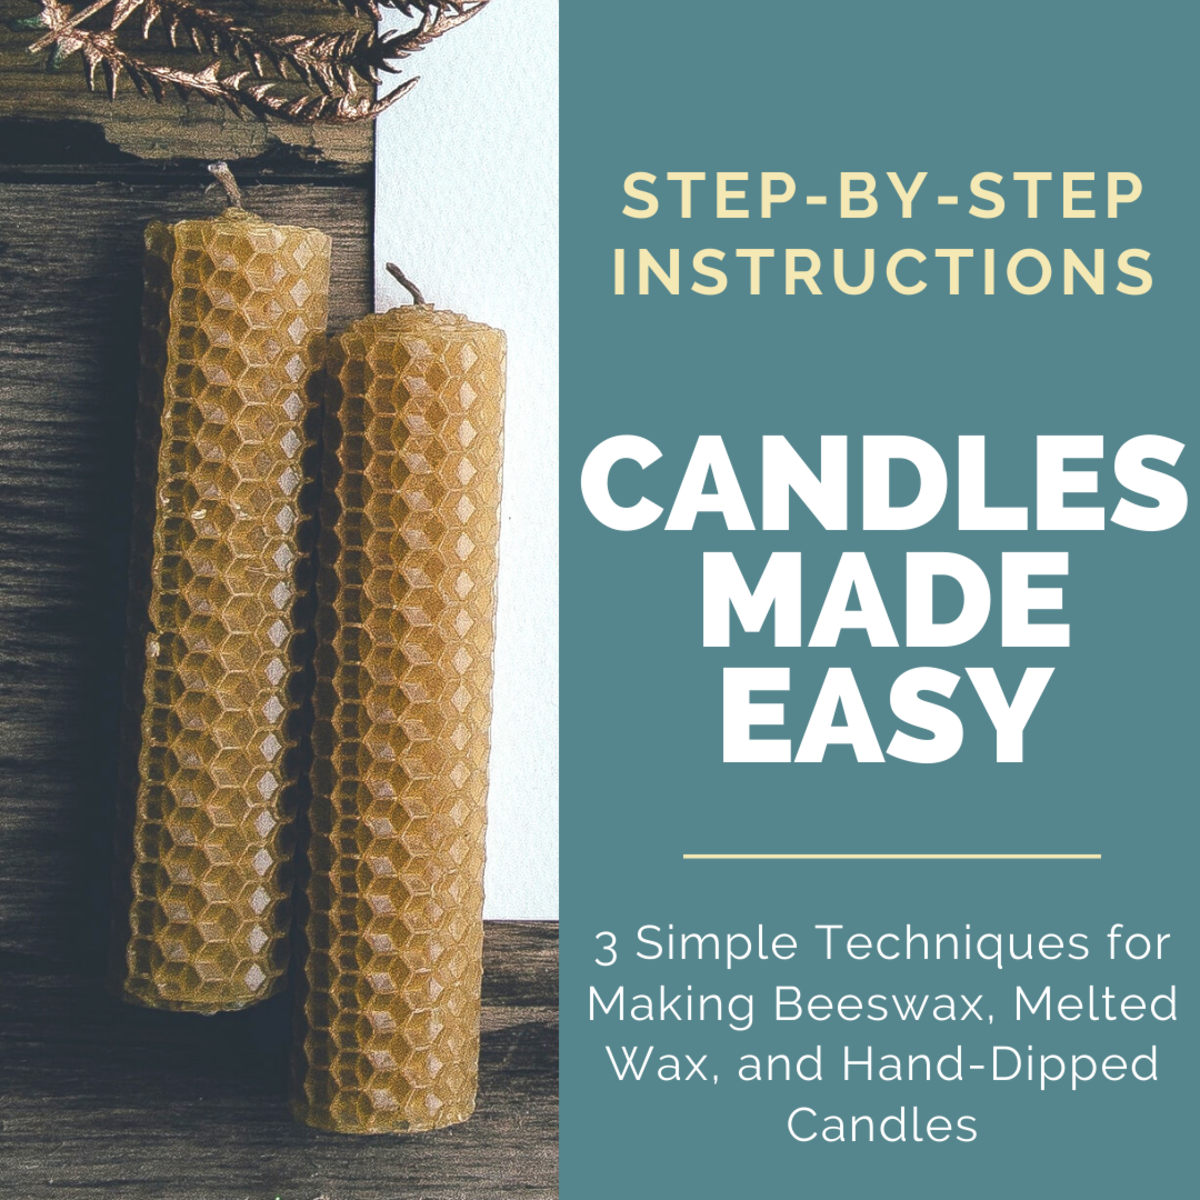 Making candles can be easier than you thought.